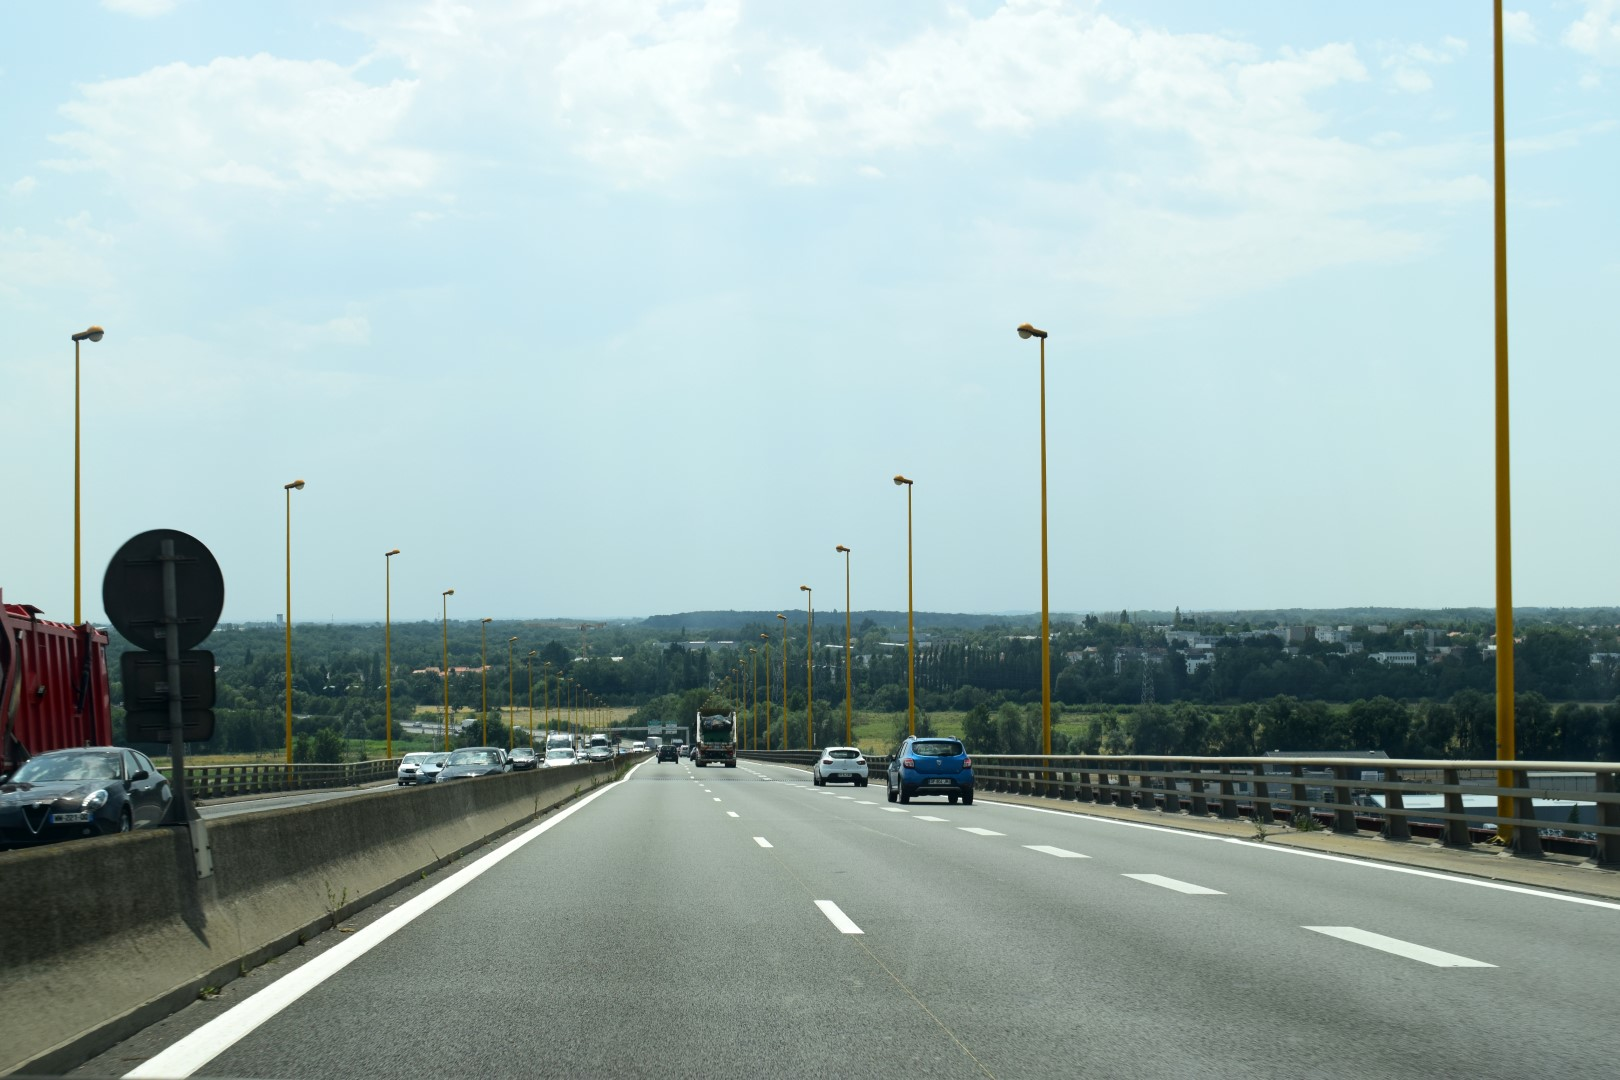 In the car to Saint-Michel